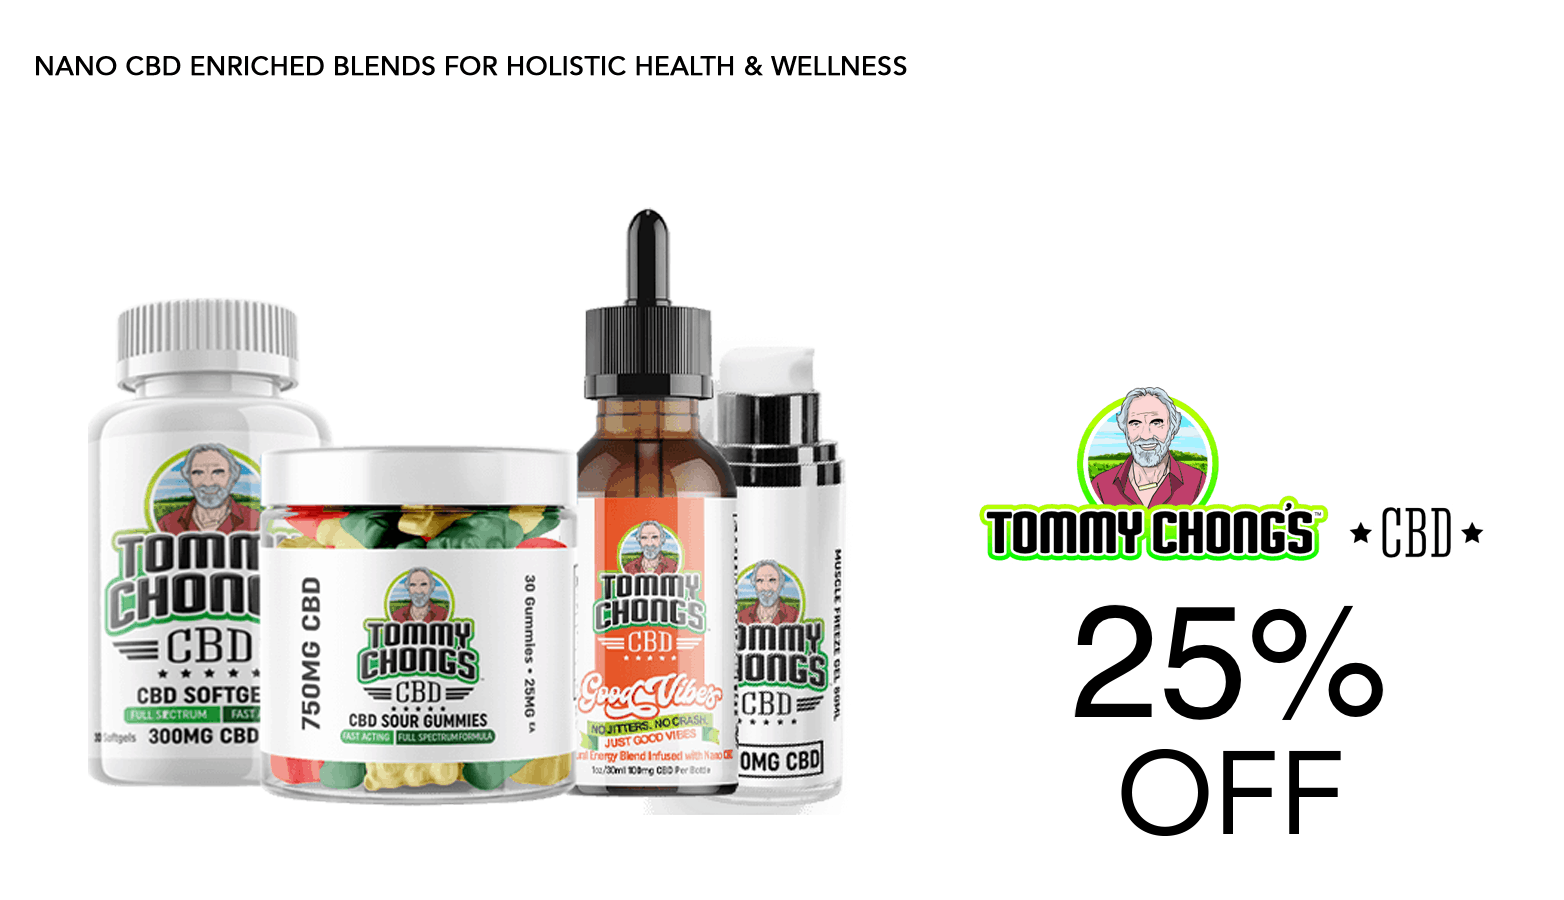 Tommy Chong CBD Coupon